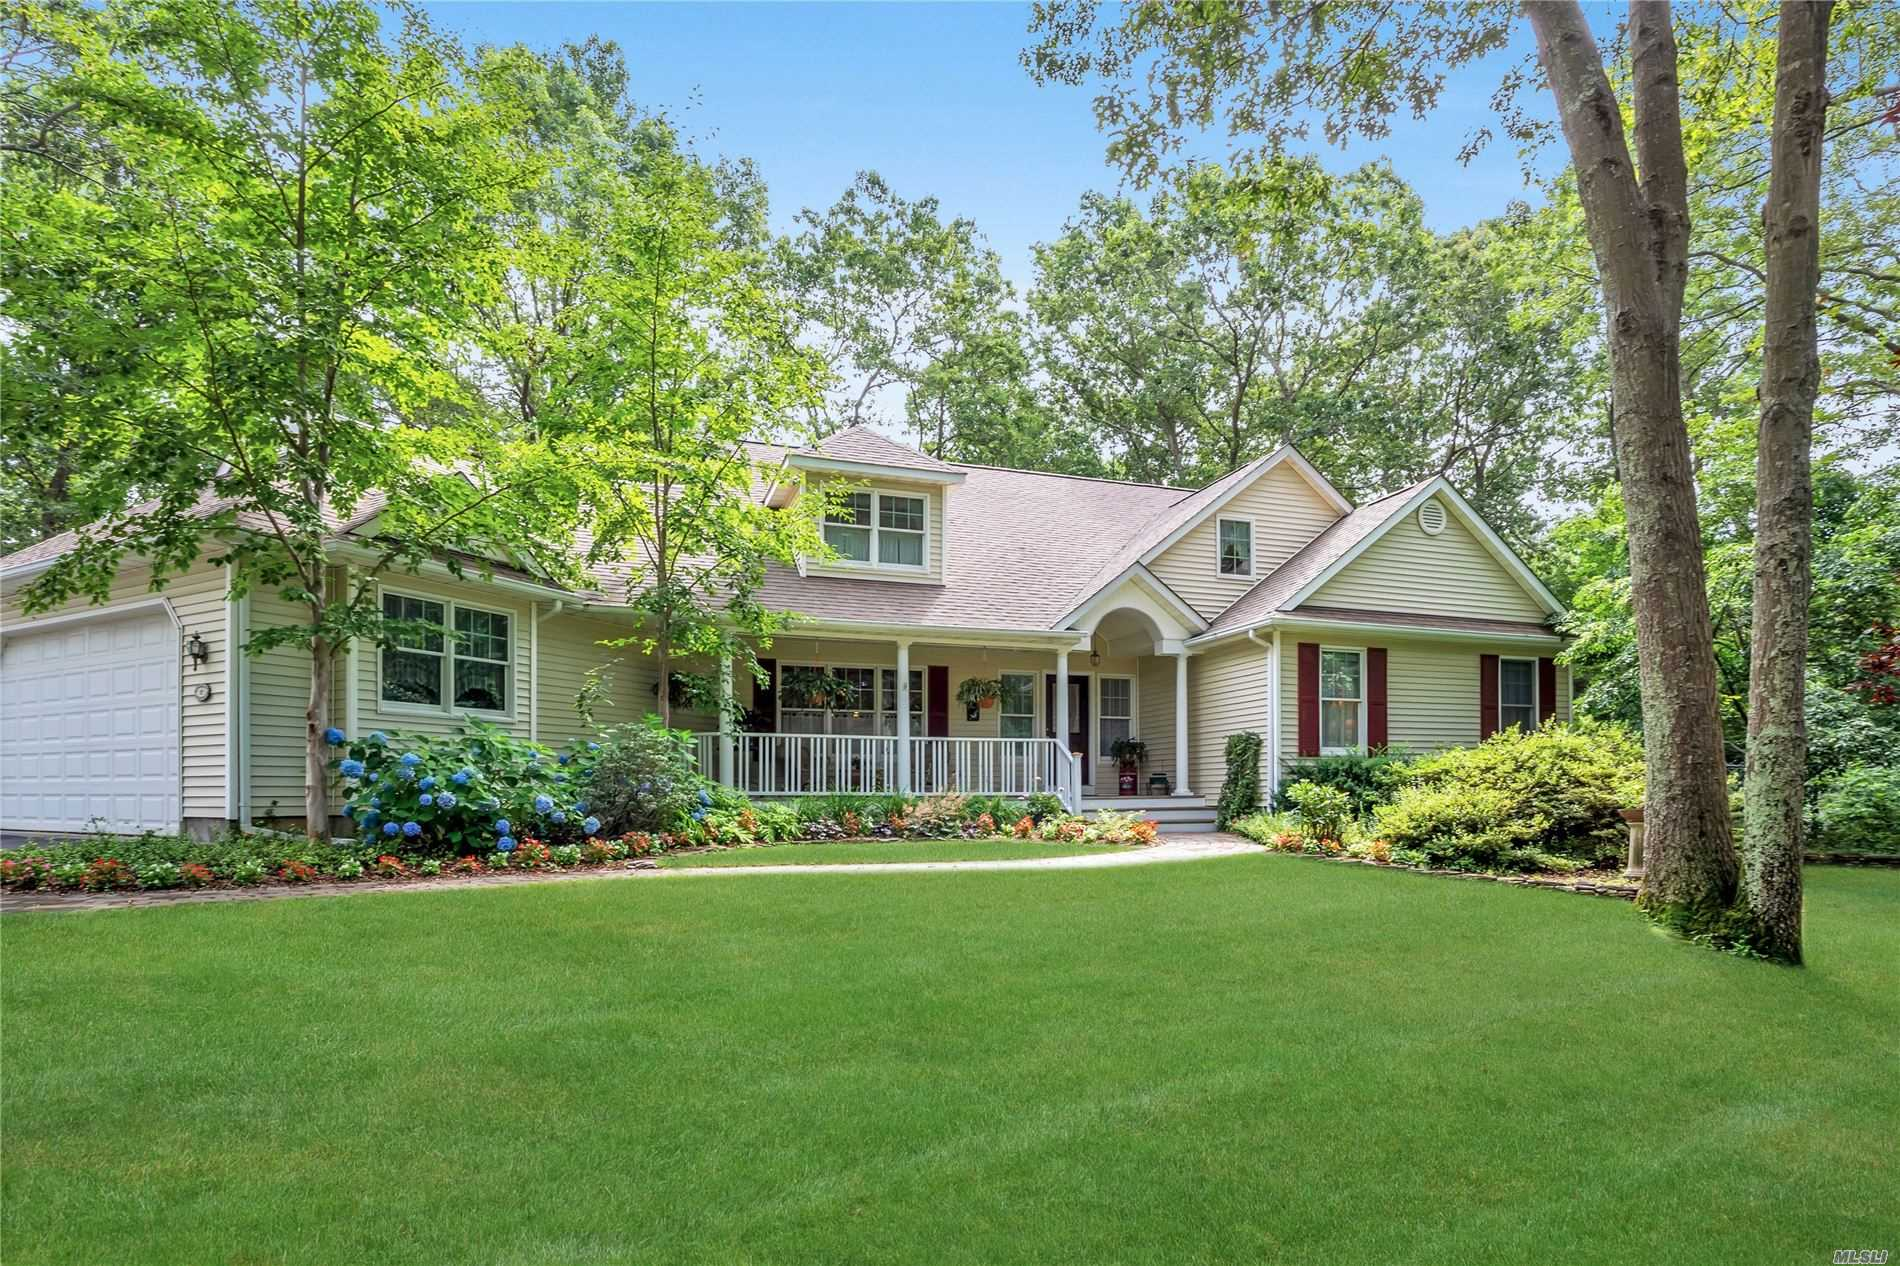 Tax Grievence In Progress. Beautiful Home In A Lovely Setting. 4 Bedroom Custom Built Cape On Park Like Grounds. All Hardwood Floors, Newly Updated Kitchen W/Quartz Counters, MBR Suite On First Floor, Very Large Rooms And Loads Of Closets. All Andersen Windows, Den W/Fireplace, Over Sized 2 Car Garage W/ 9 Foot Ceiling, New Driveway And Paver Walkway, Water Filtration System, CVAC,  Original Owner, Adjacent To Town Property So There is Lots Of Privacy. Shoreham/Wading River Schools.